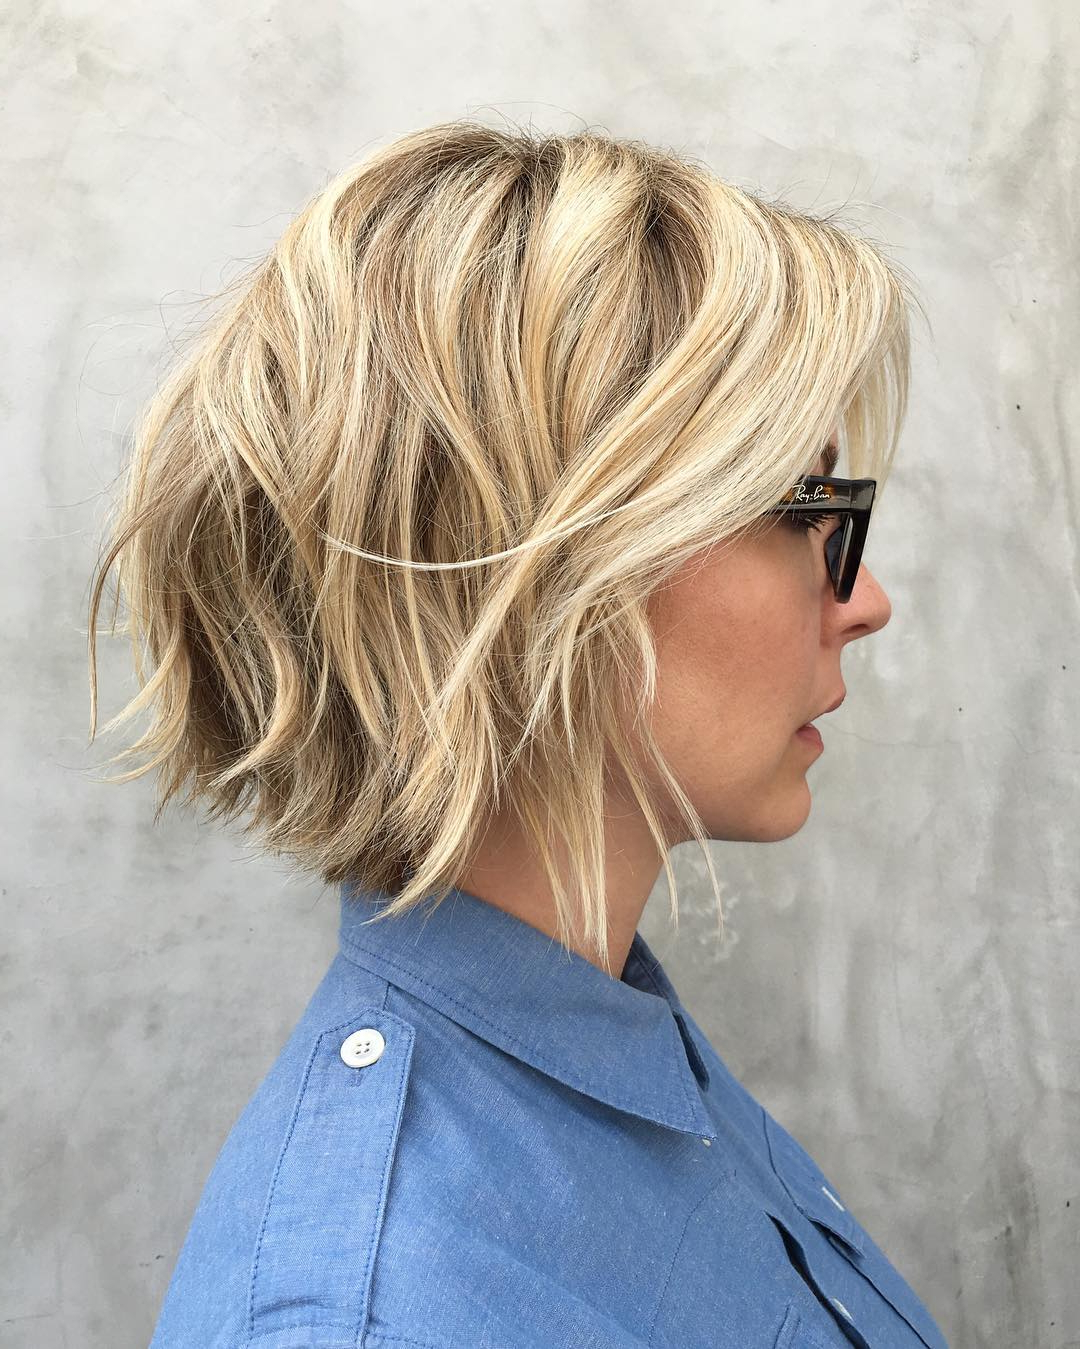 30 Trendiest Shaggy Bob Haircuts Of The Season With Messy Honey Blonde Bob Haircuts (View 8 of 20)